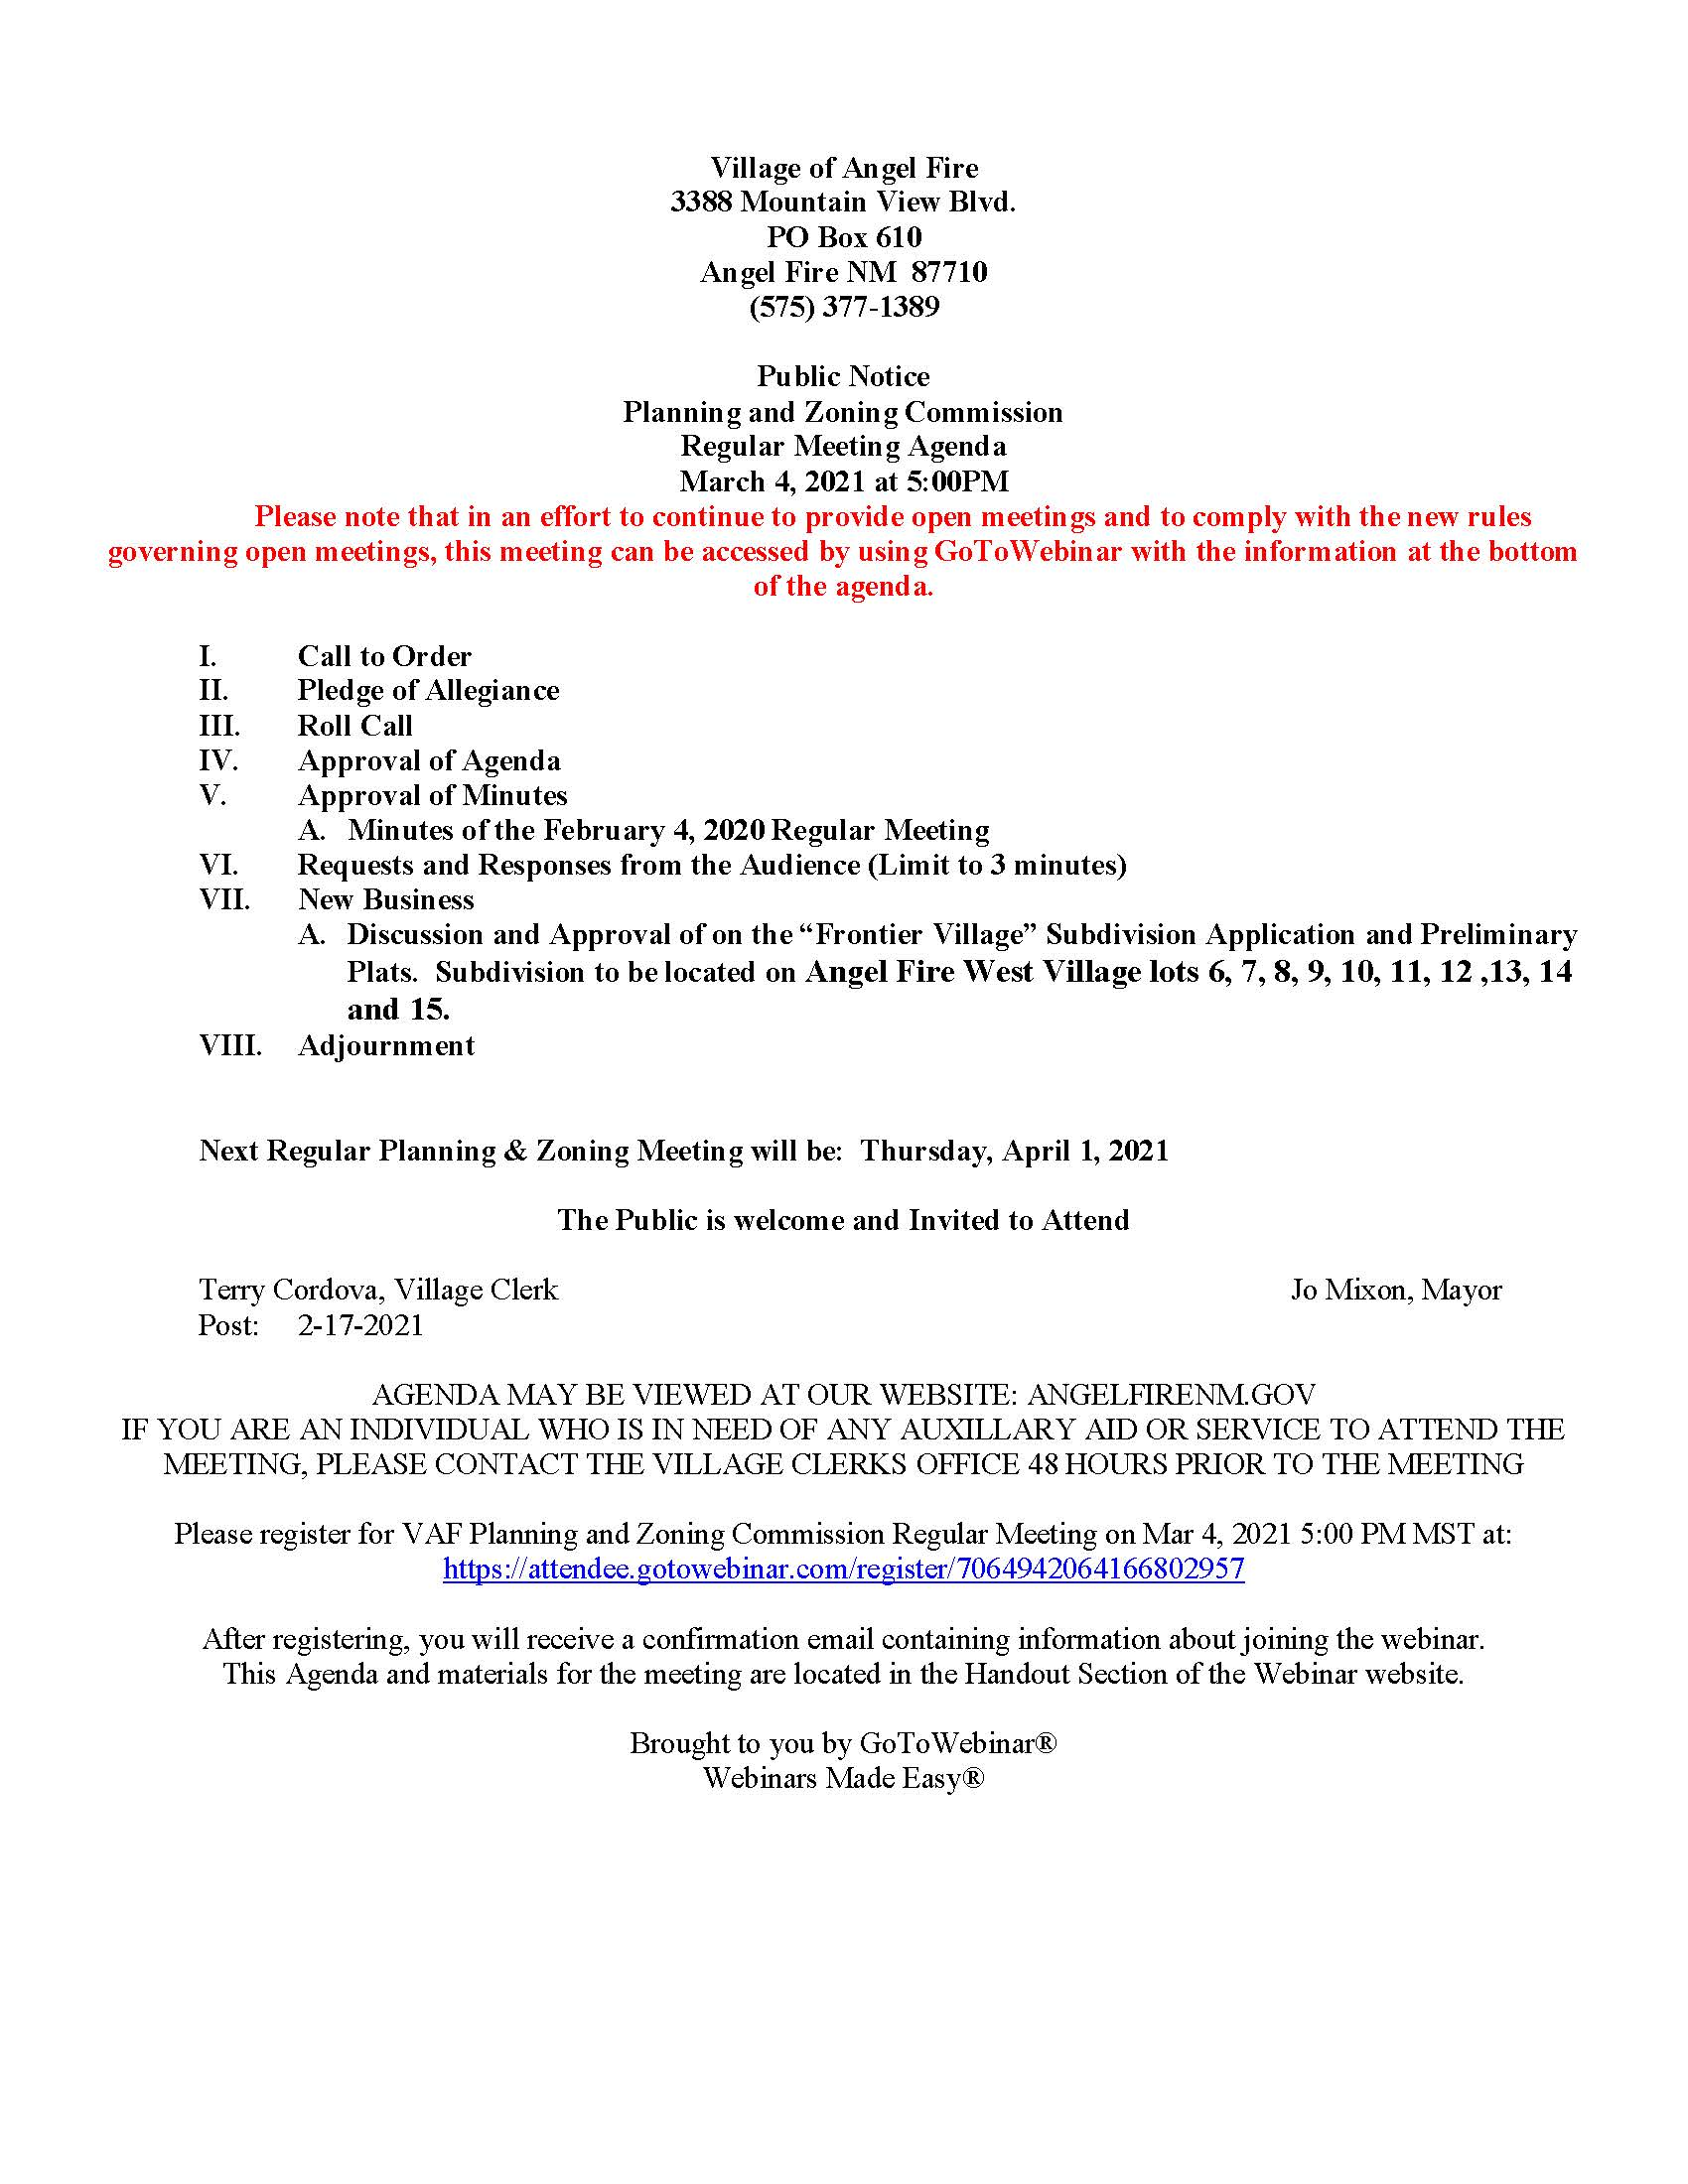 Planning and Zoning Commission Meeting Agenda 3-4-2021